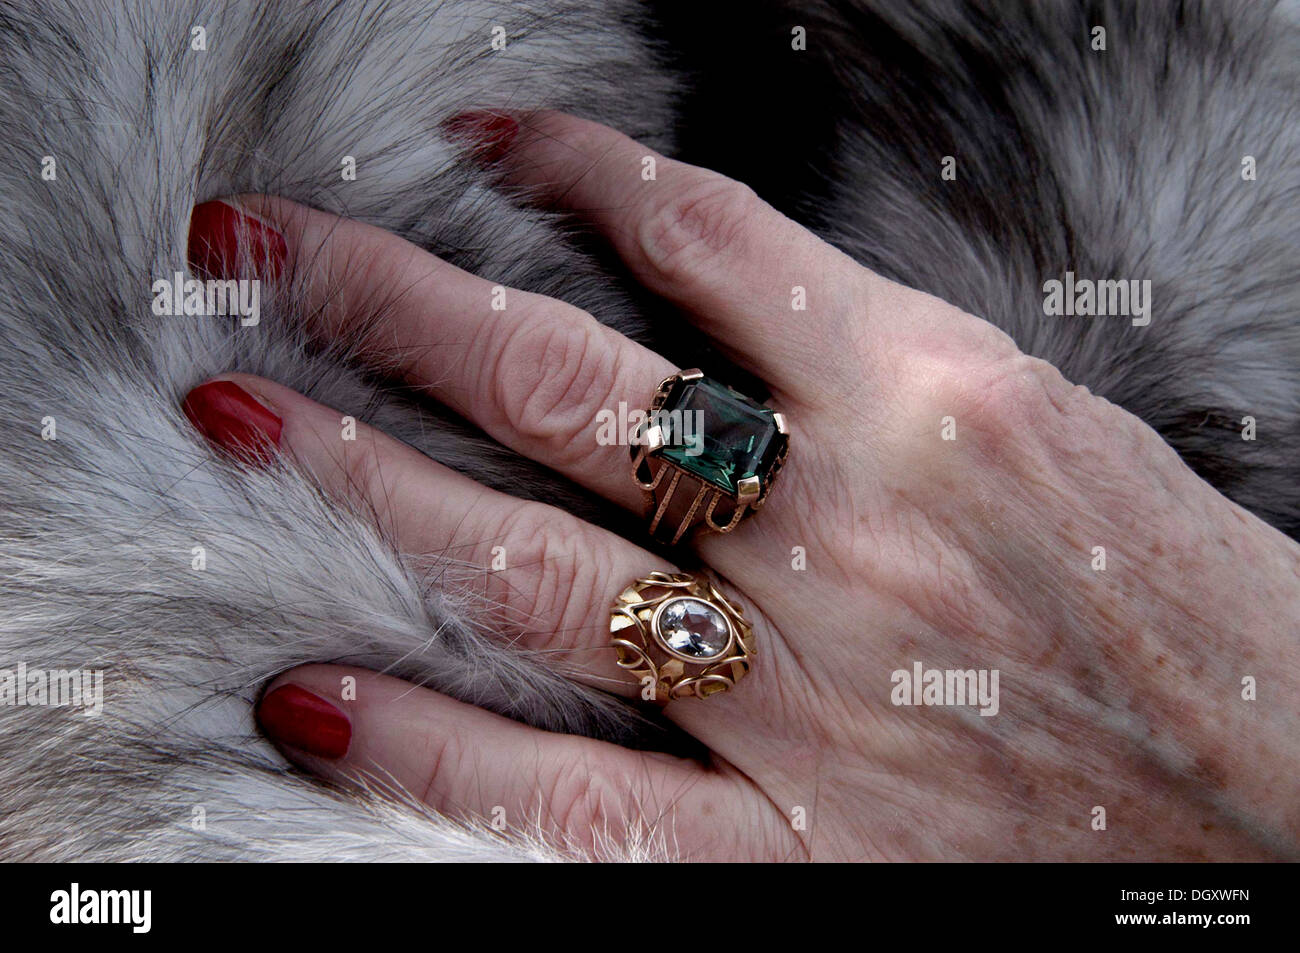 Hand of an old woman with red painted nails and rings lying on a fur ...